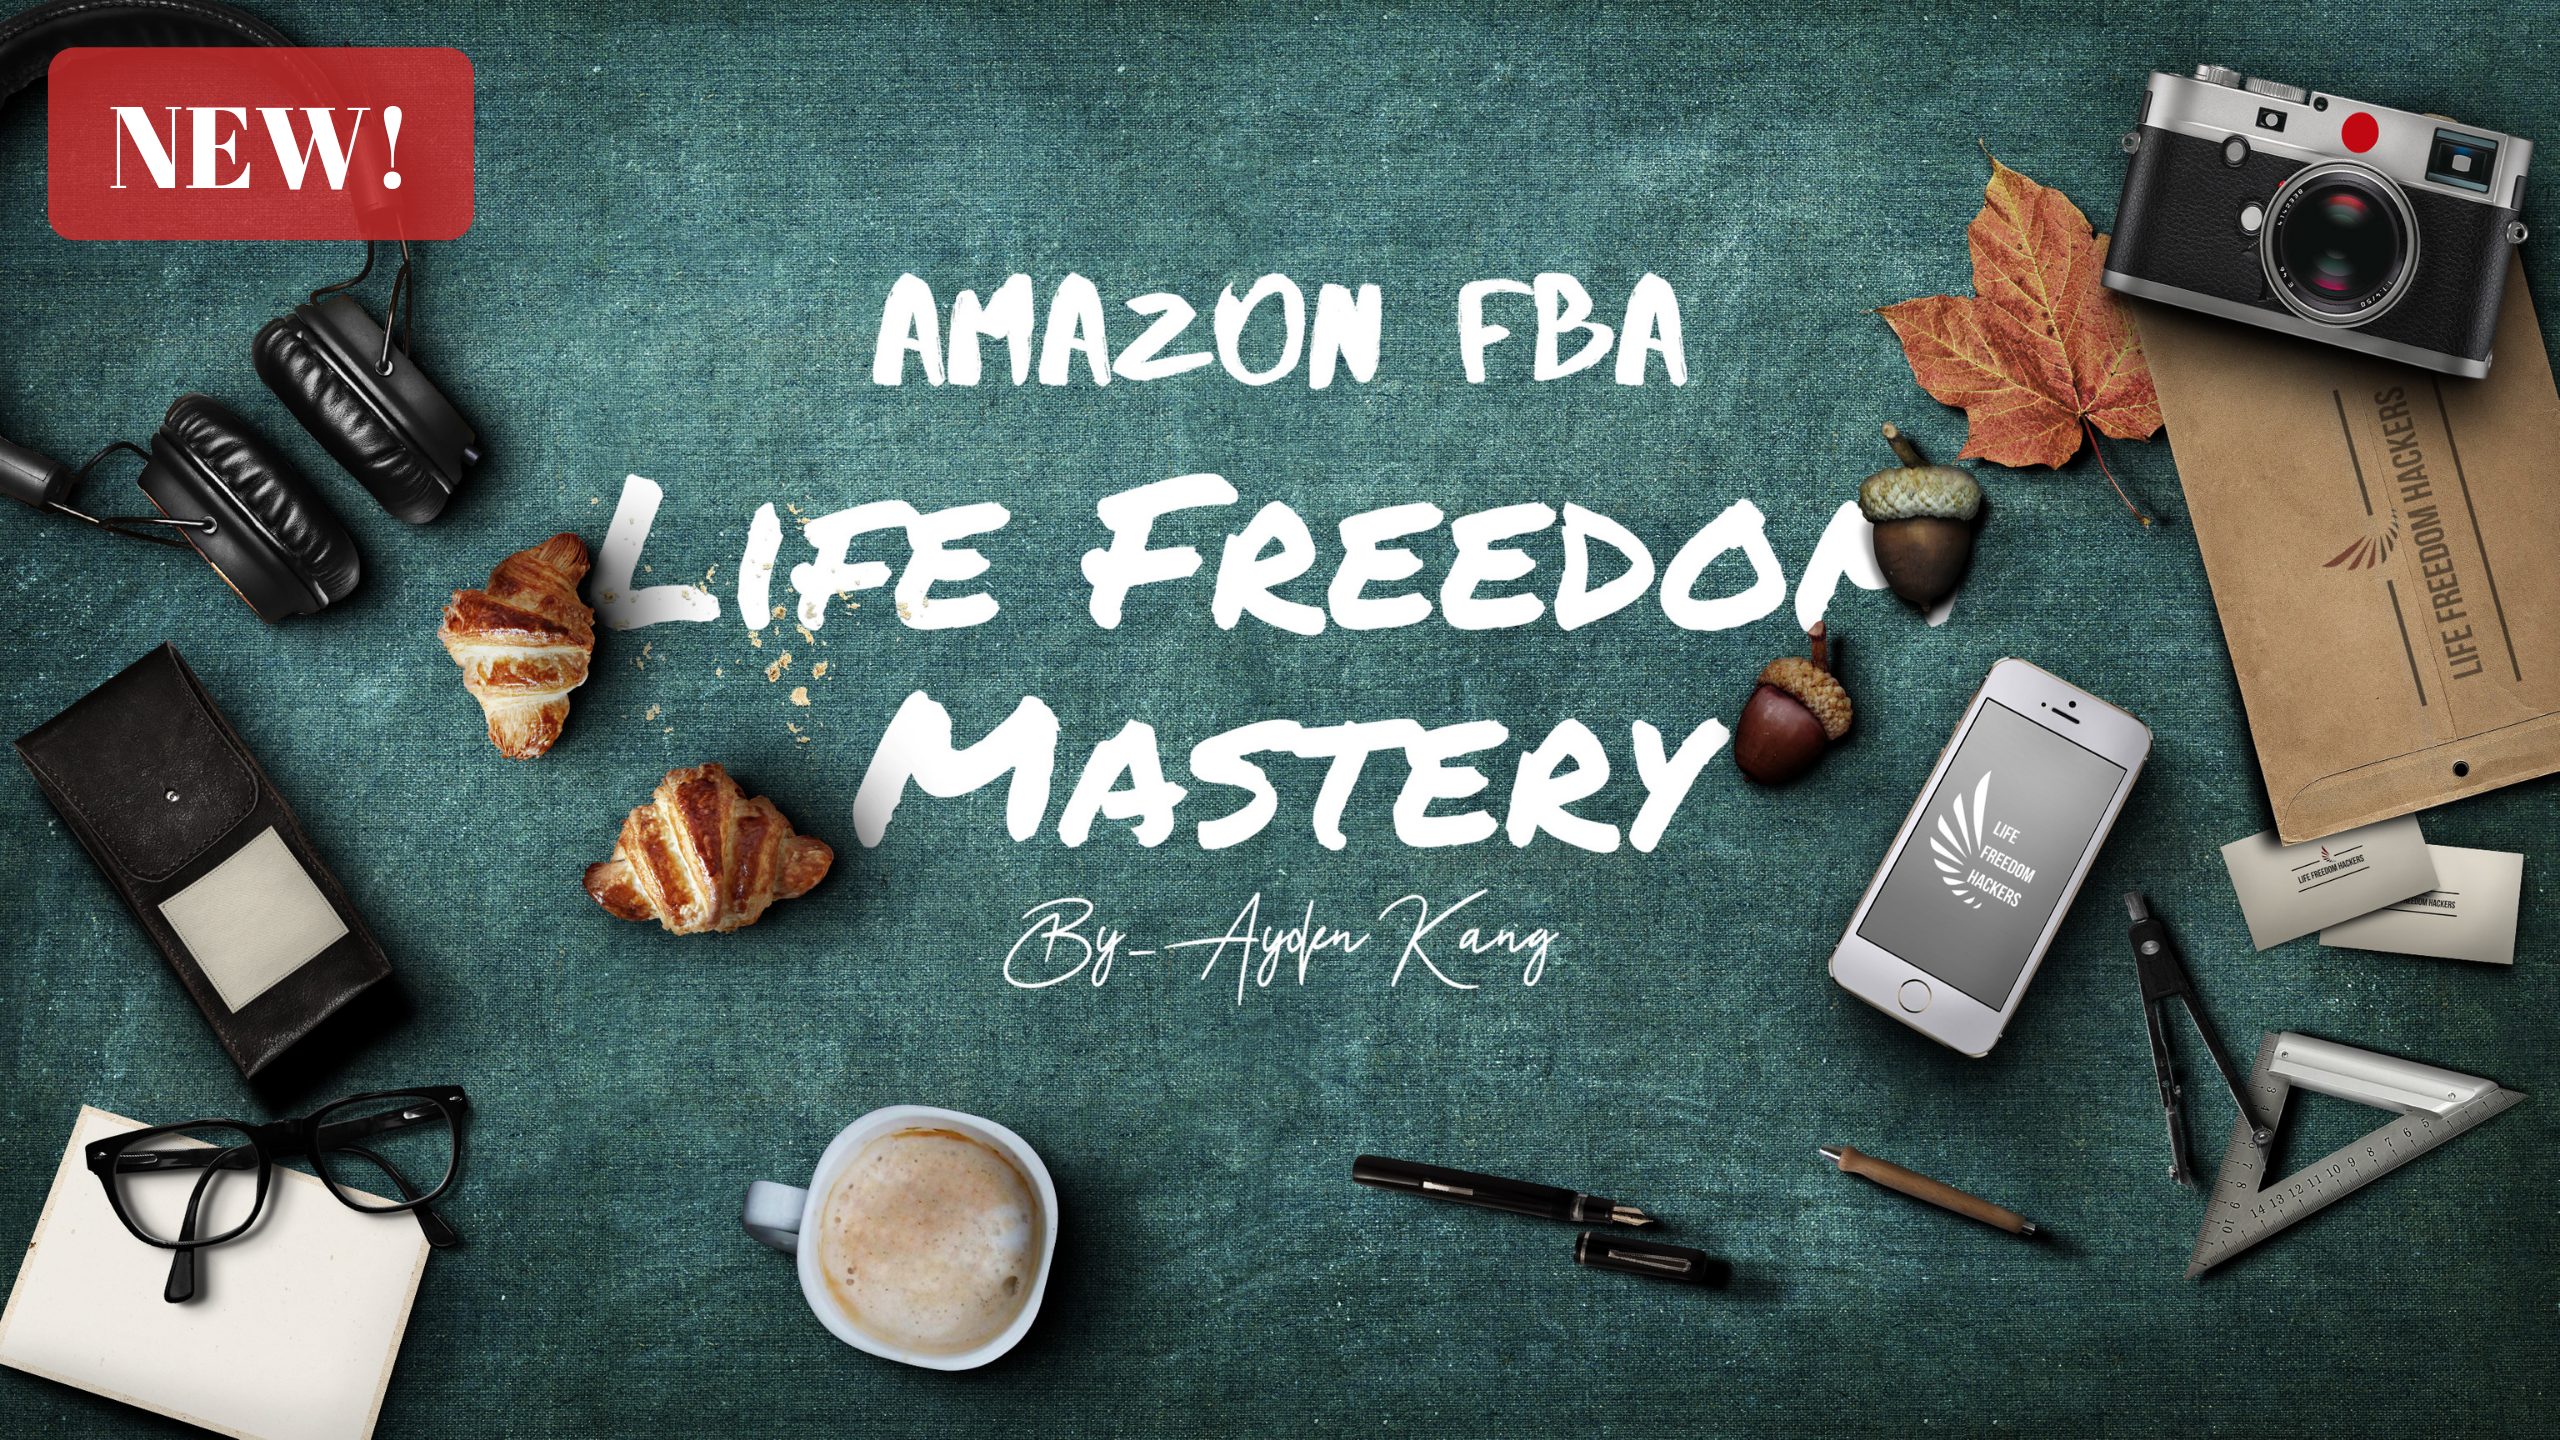 Amazon FBA Life Freedom Mastery